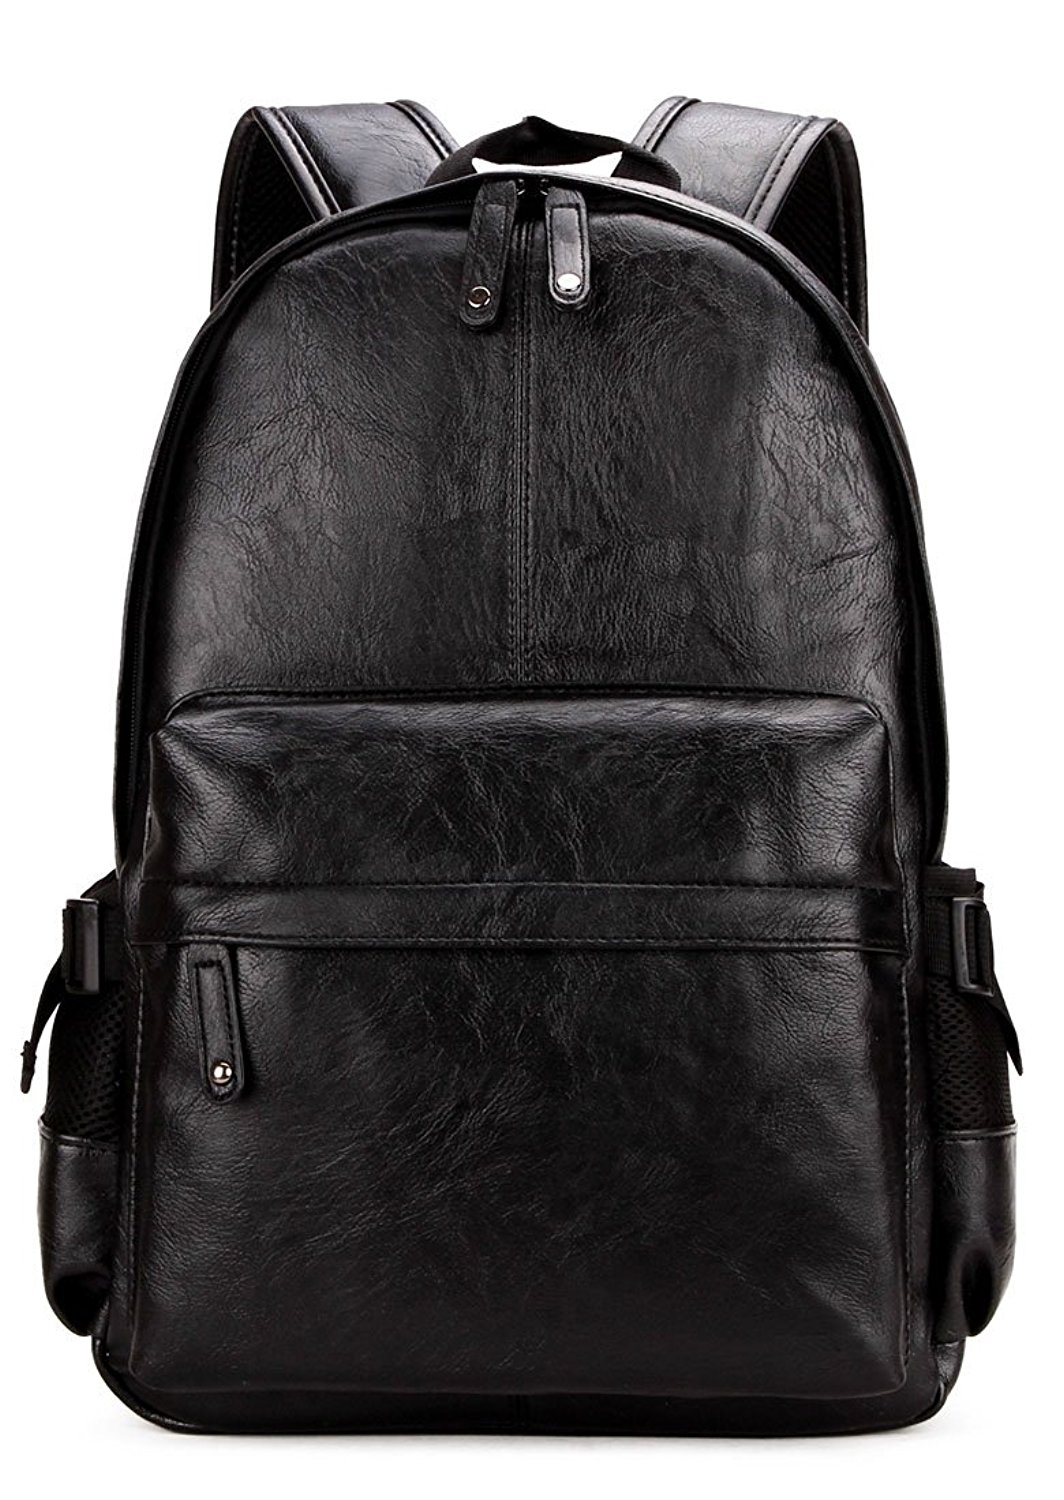 b31e613fae Get Quotations · Kenox Vintage PU Leather Backpack School College Bookbag  Laptop Computer Backpack